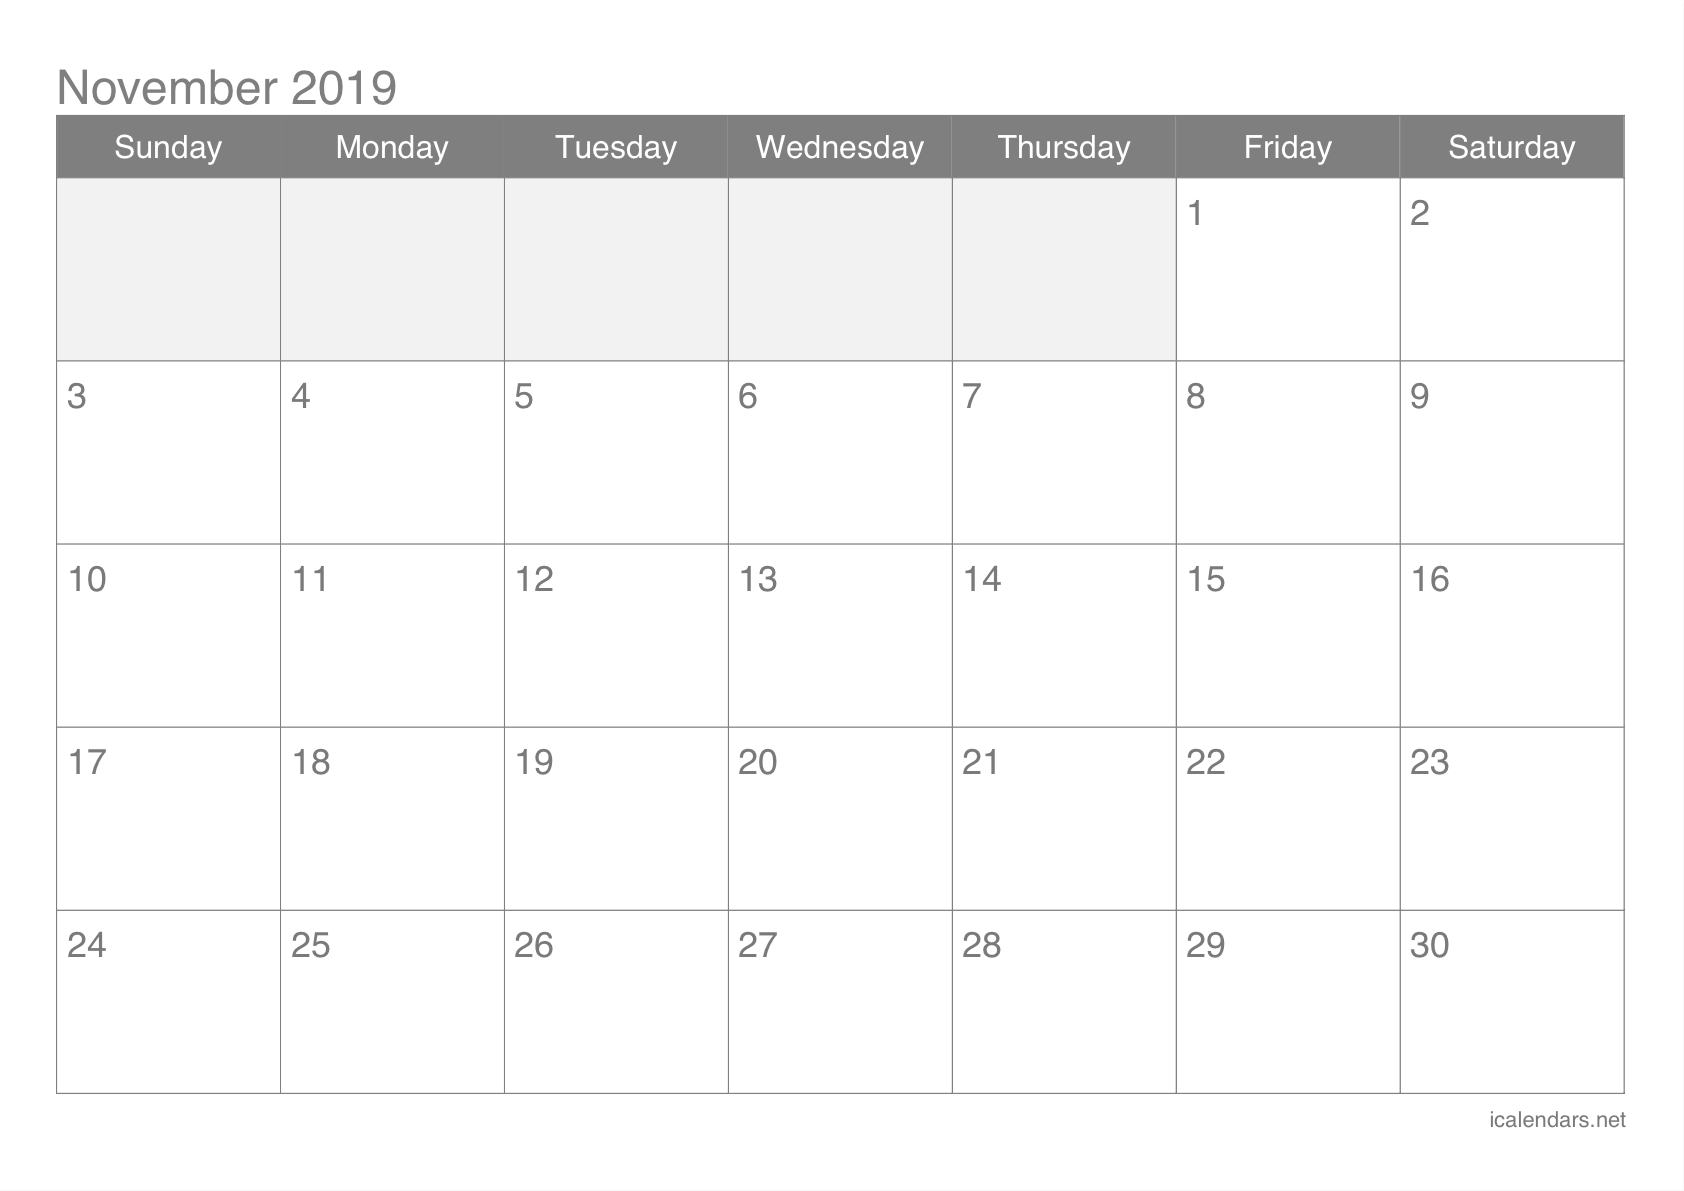 image regarding November Printable Calendar referred to as November 2019 Printable Calendar -